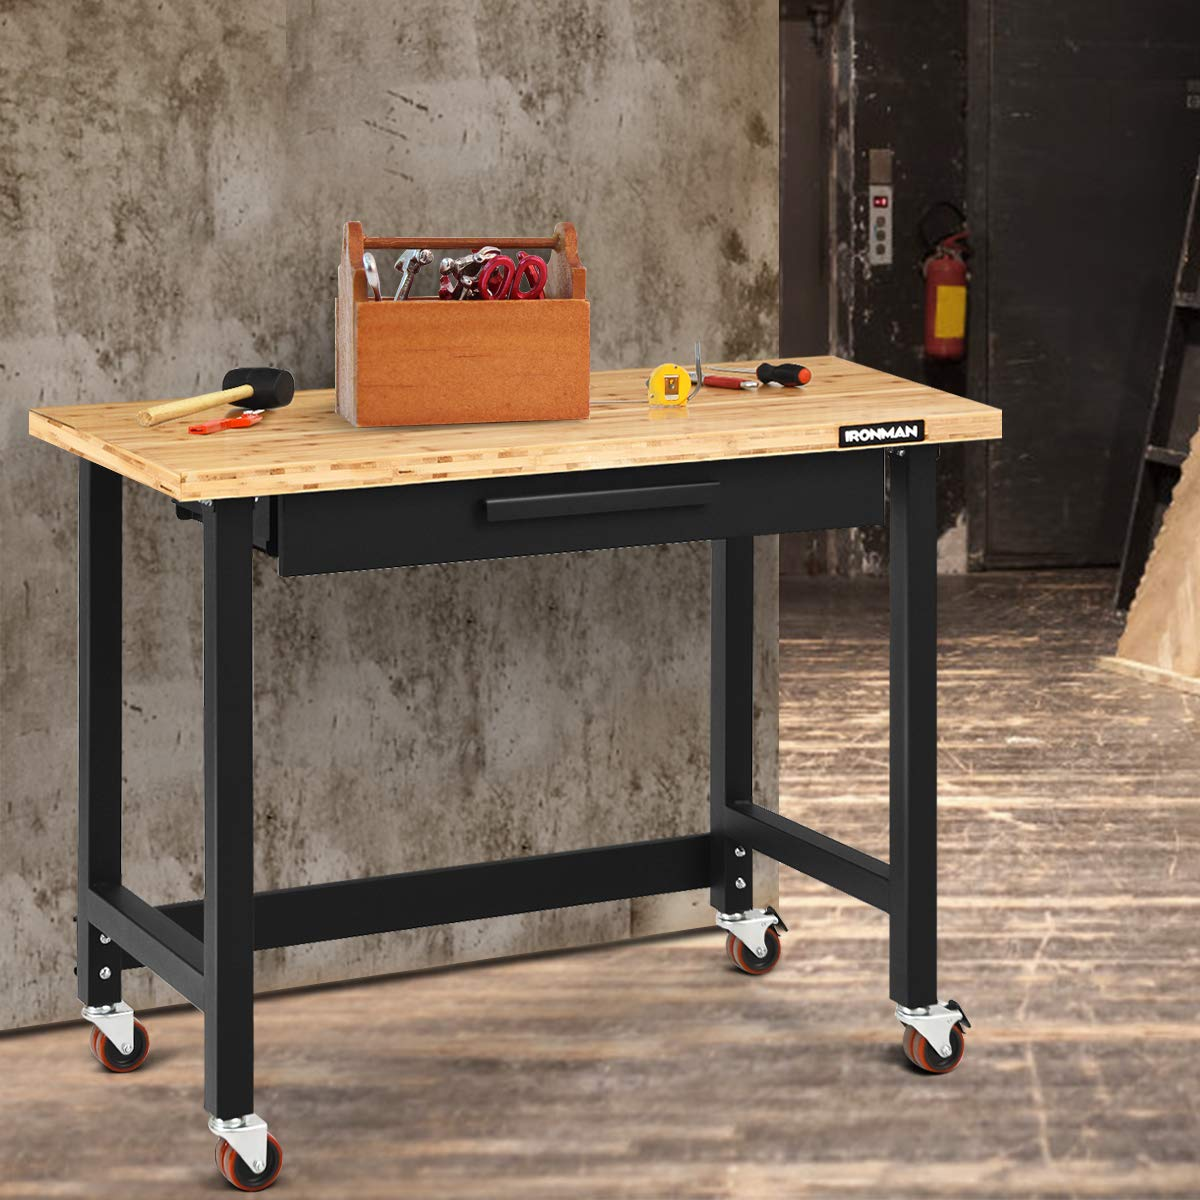 Terrific Goplus 48 Mobile Workbench Bamboo Tabletop Workstation With Two Lockable Casters Sliding Organizer Drawer Weight Capacity 500 Lbs Multipurpose Pabps2019 Chair Design Images Pabps2019Com